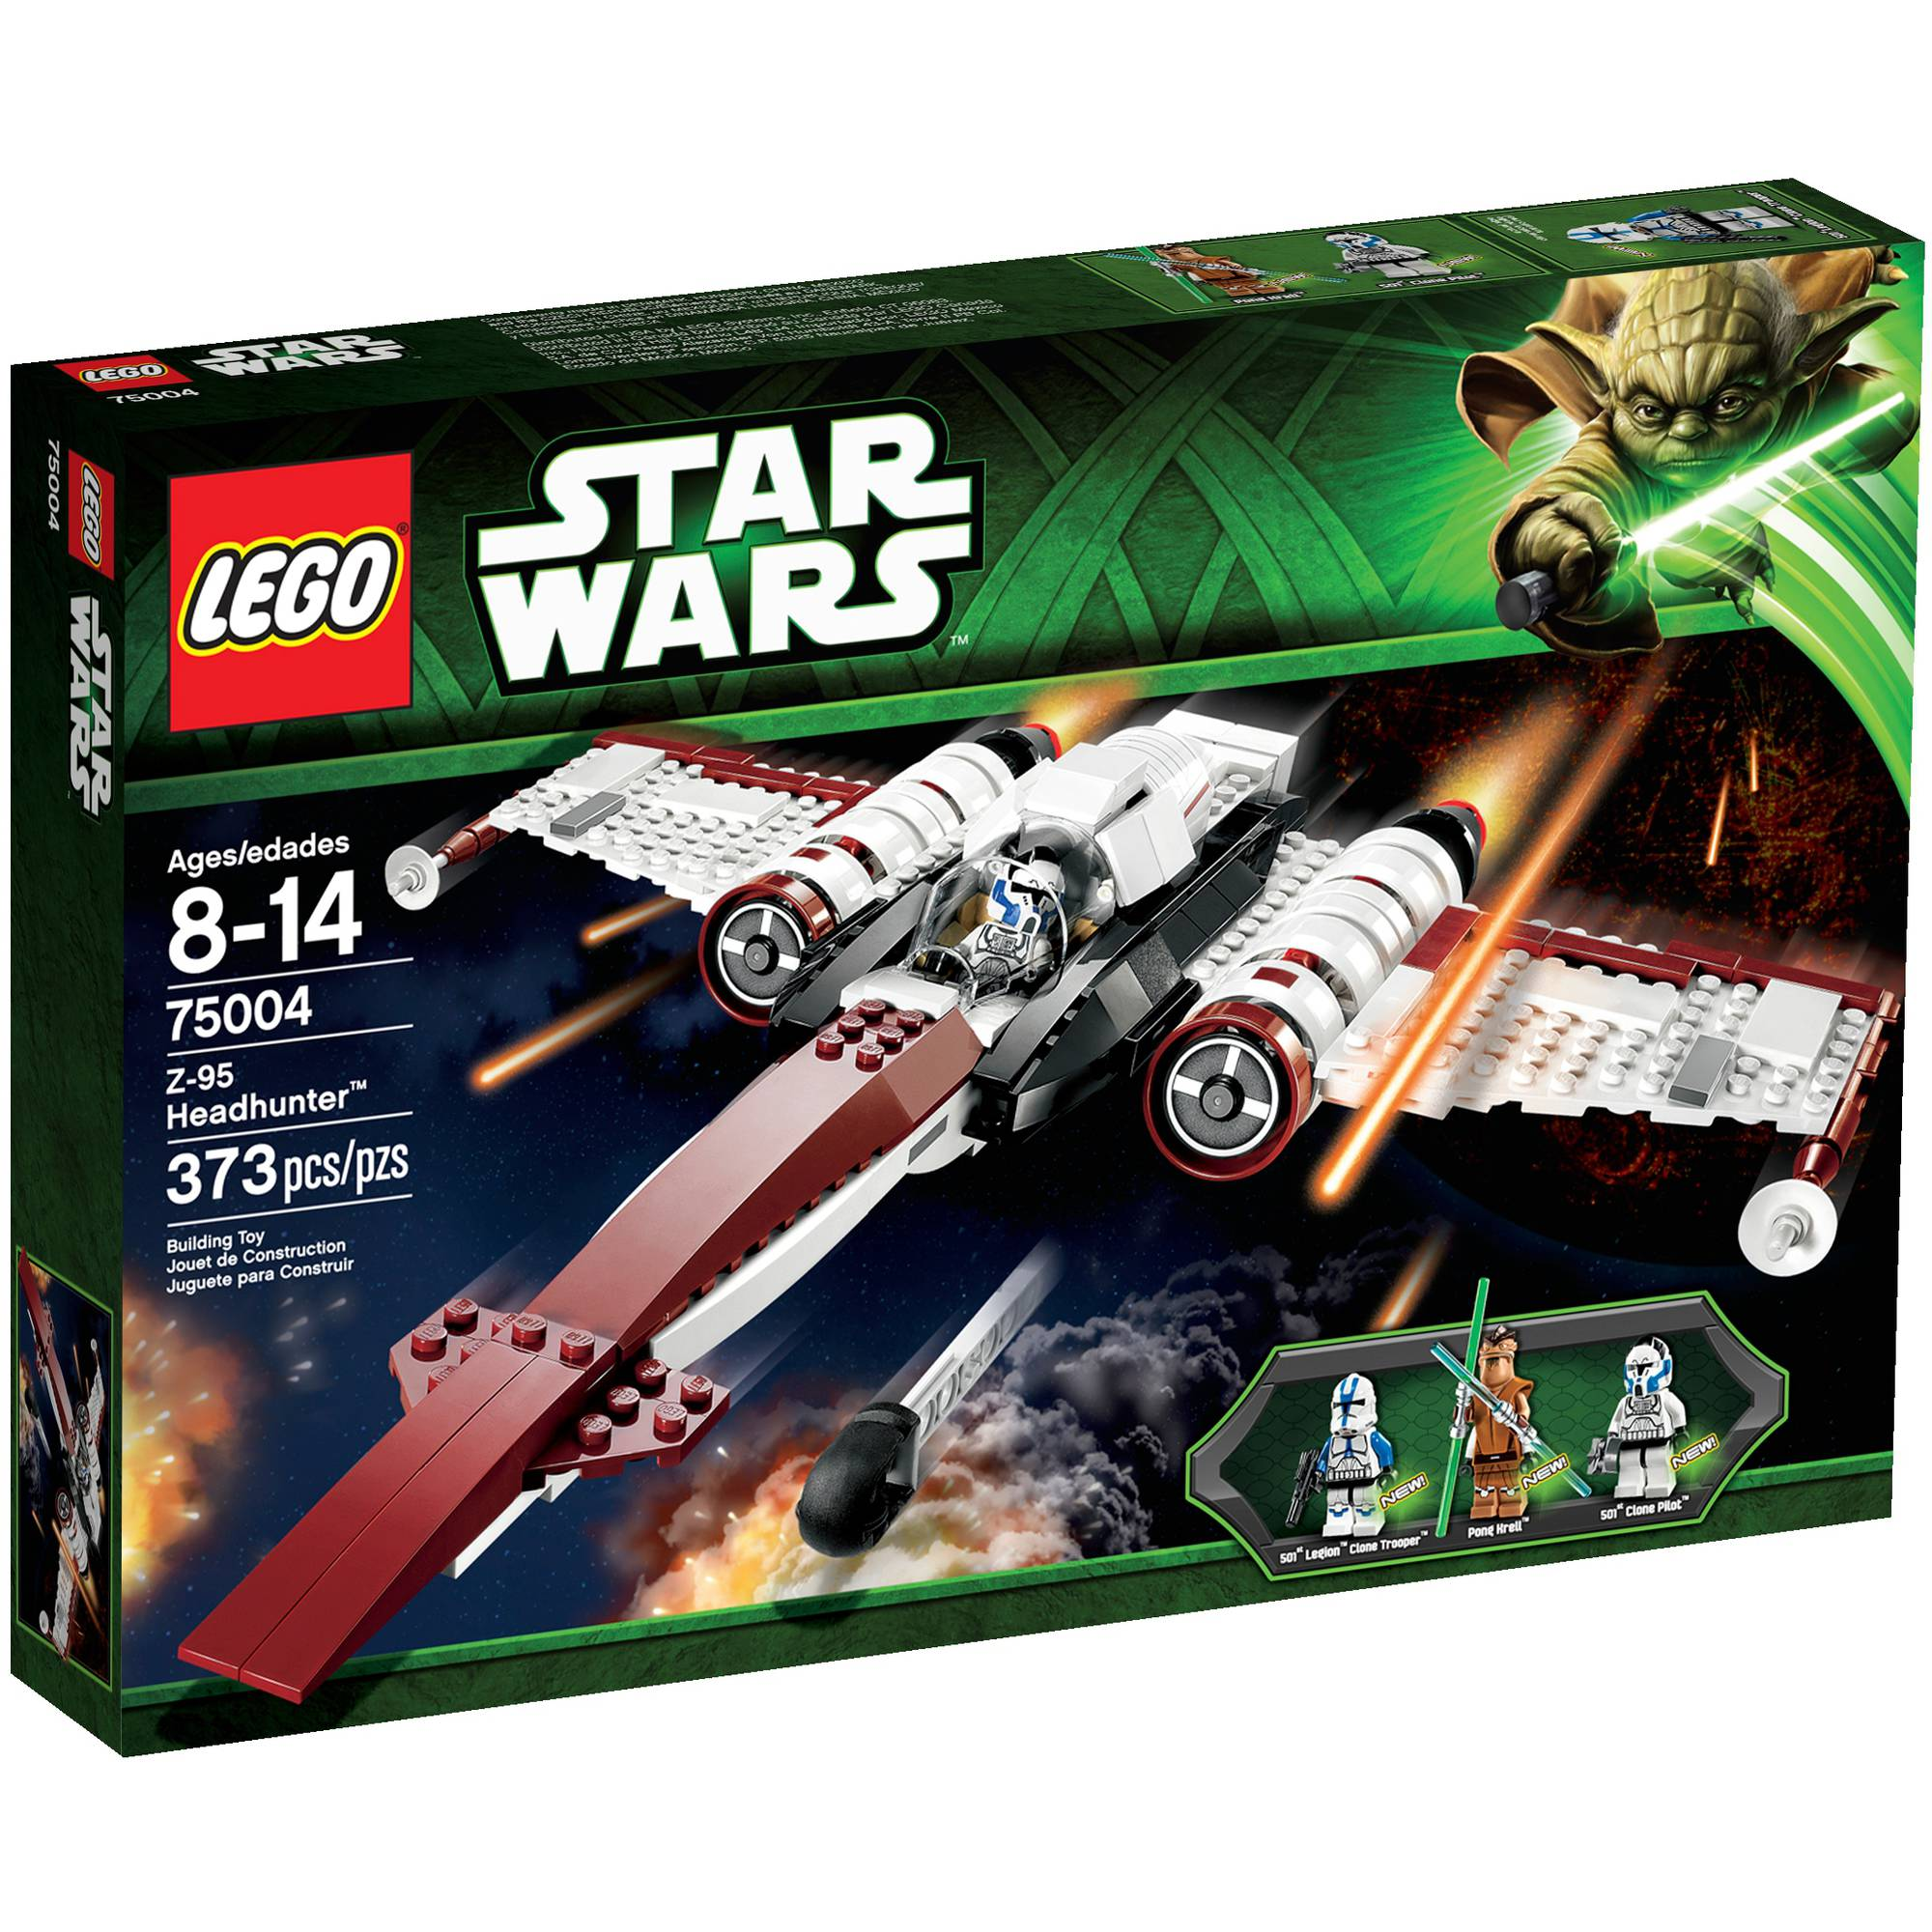 LEGO Star Wars Z-95 Headhunter Play Set